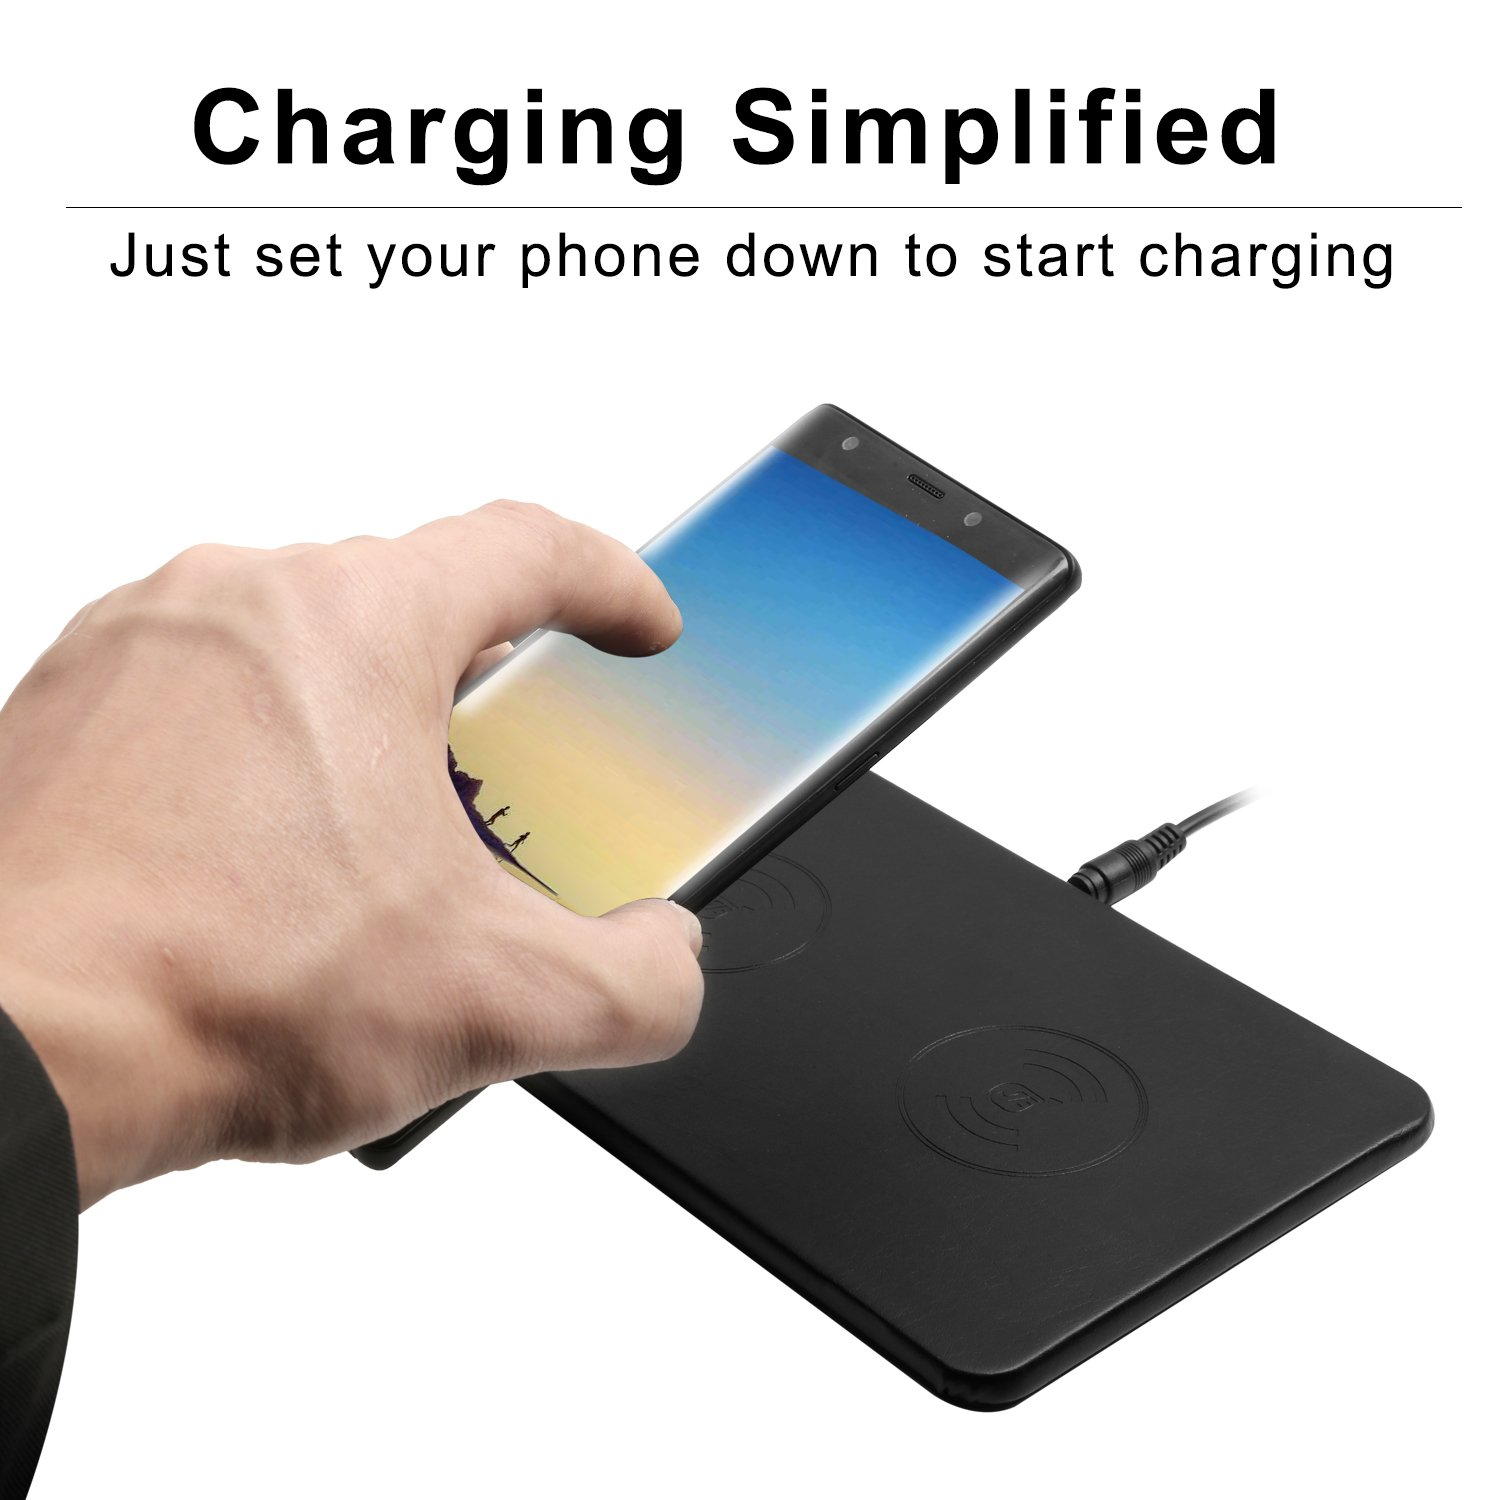 Qi Triple Wireless Charger Station,JE 3 Devices Multi Wireless Charger Pad,Desktop Charging Station for iPhone X, iPhone 8/8Plus, Samsung Galaxy S8+ S7/S7 Edge Note 8/5, Nexus 5/6/7& all QI-Enabled … by JE (Image #4)